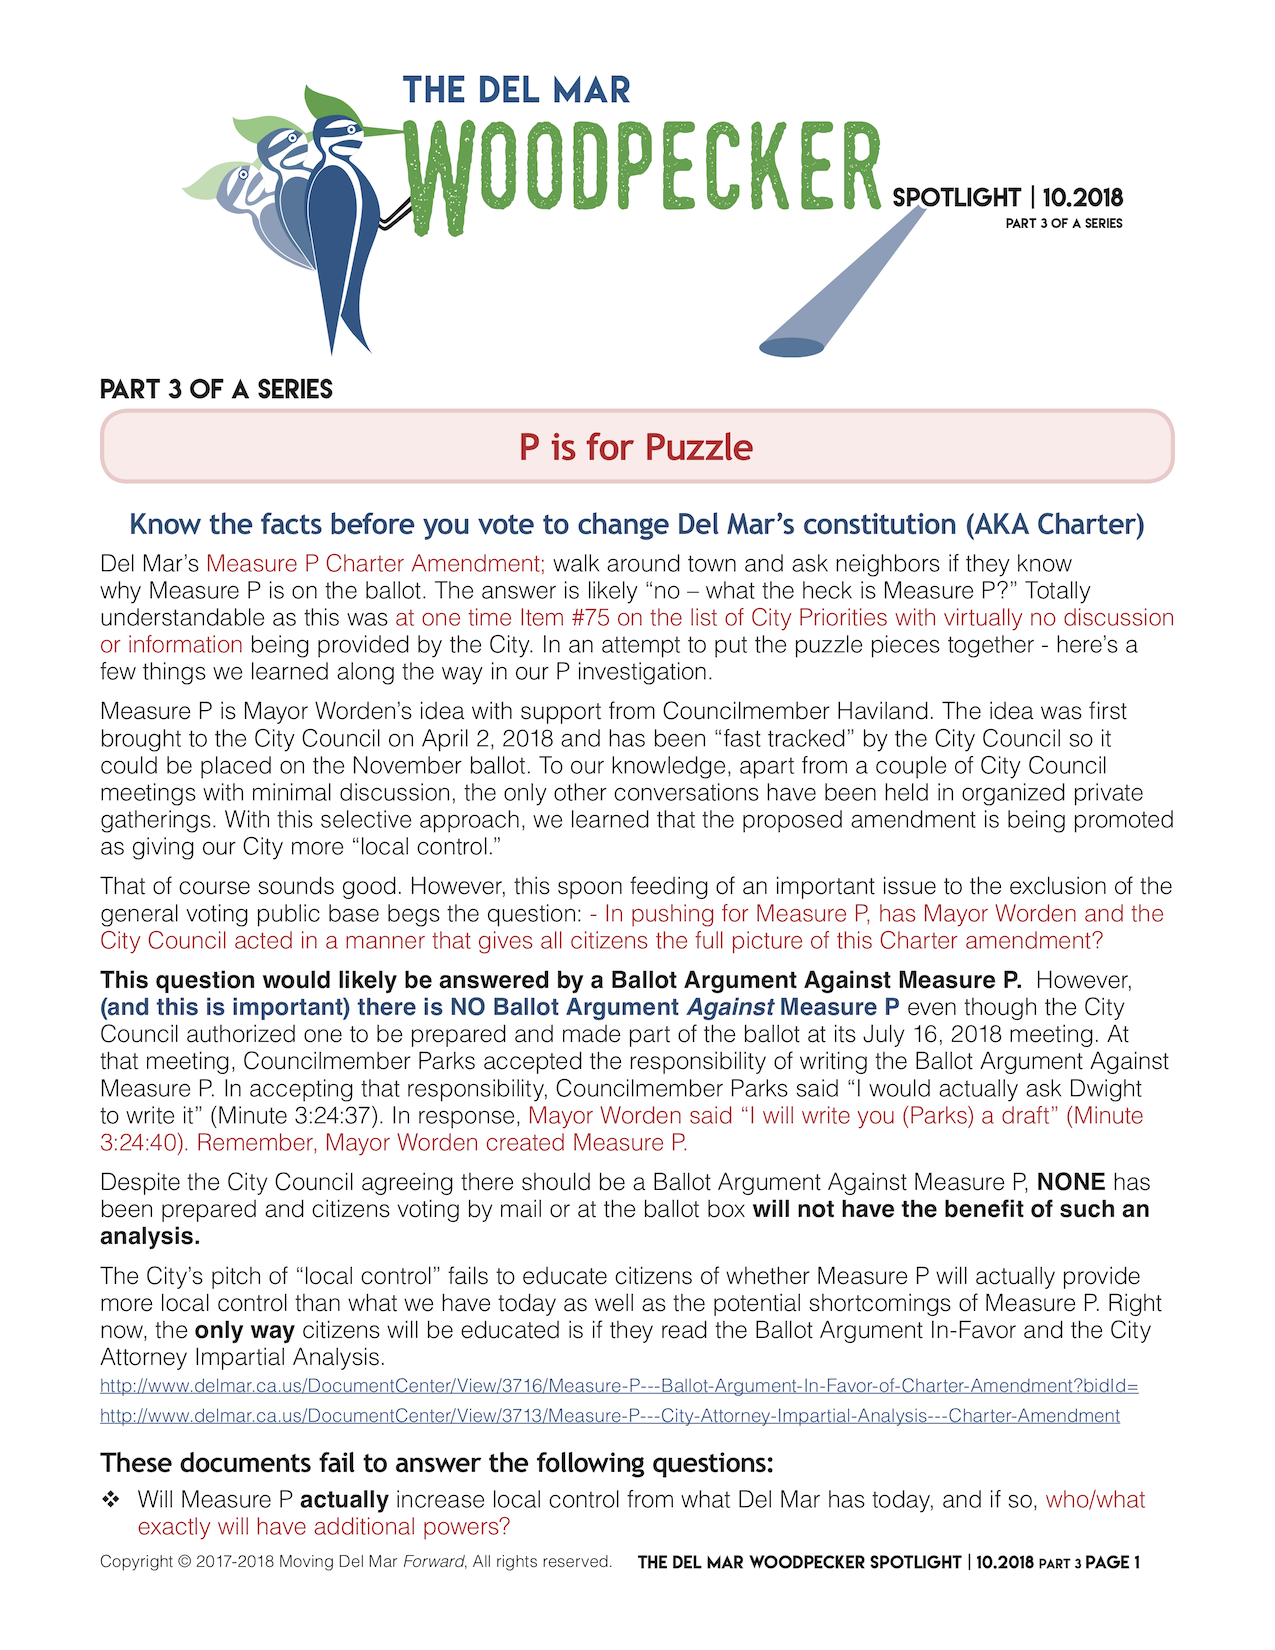 "Spotlight 10/2018 Part 3 of a Series - ""Know the facts before you vote to change Del Mar's constitution (AKA Charter) - Measure P P is for Puzzle"""